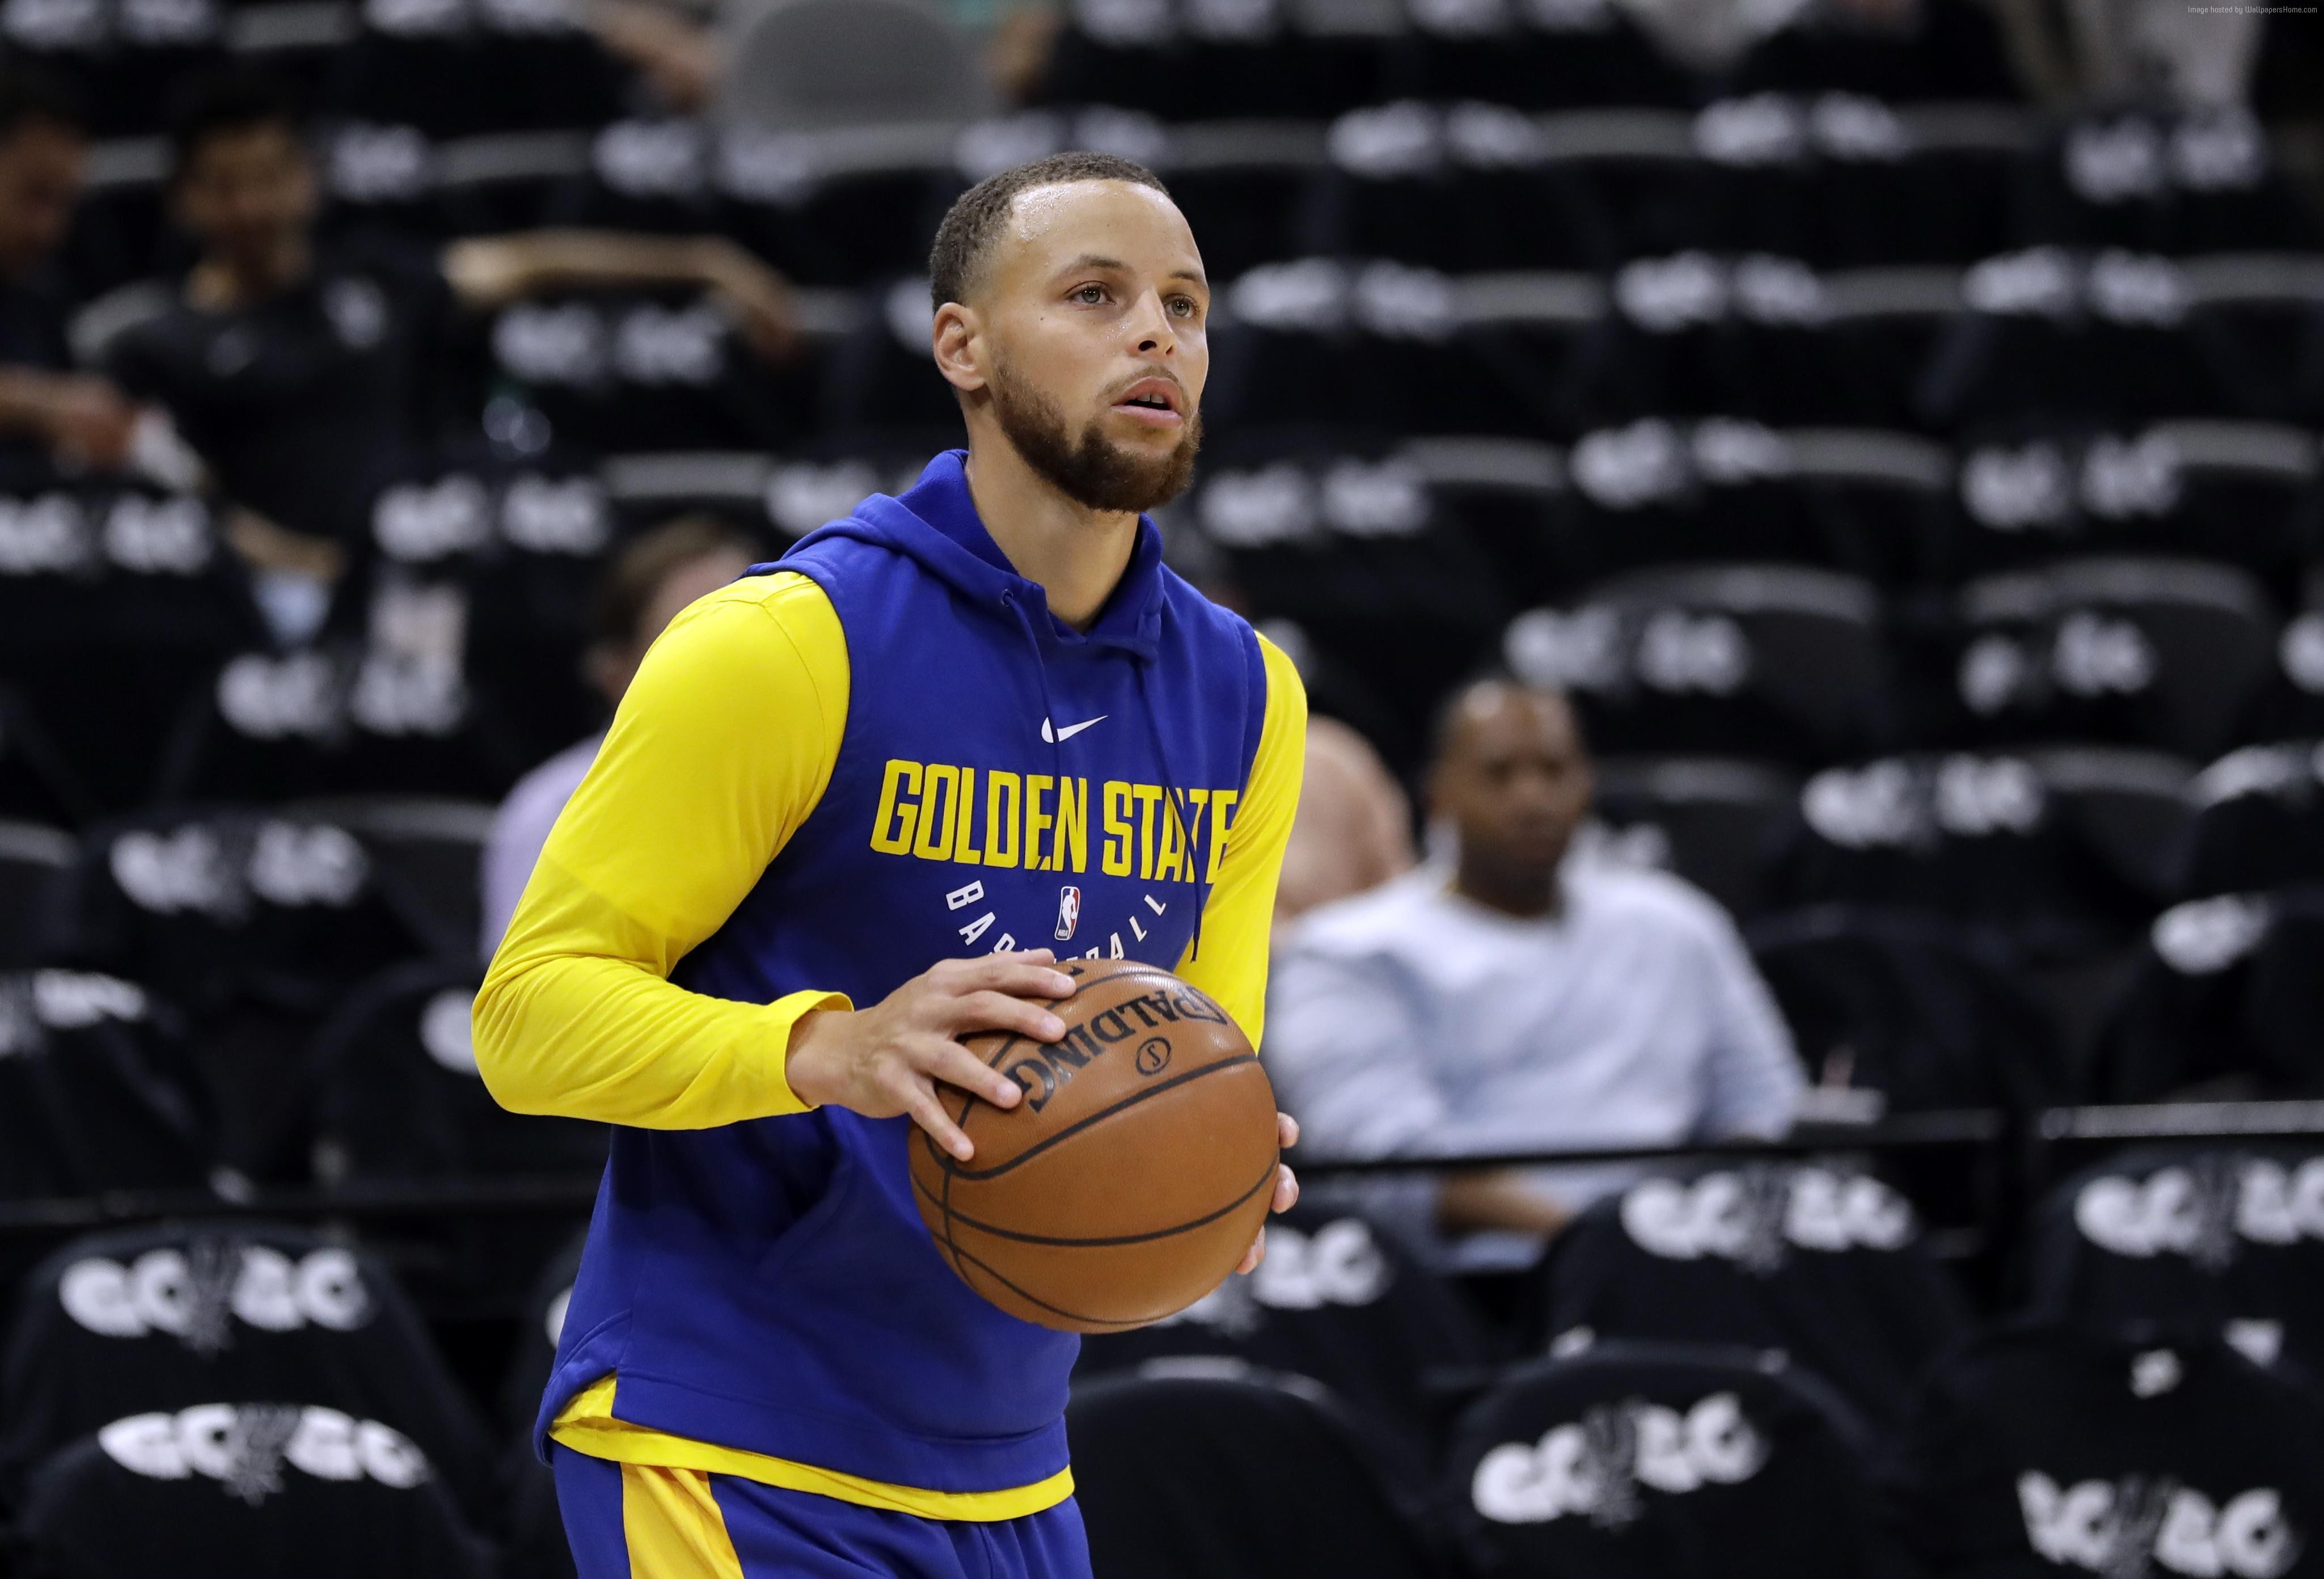 Steph Curry Hd Wallpaper Posted By Samantha Peltier